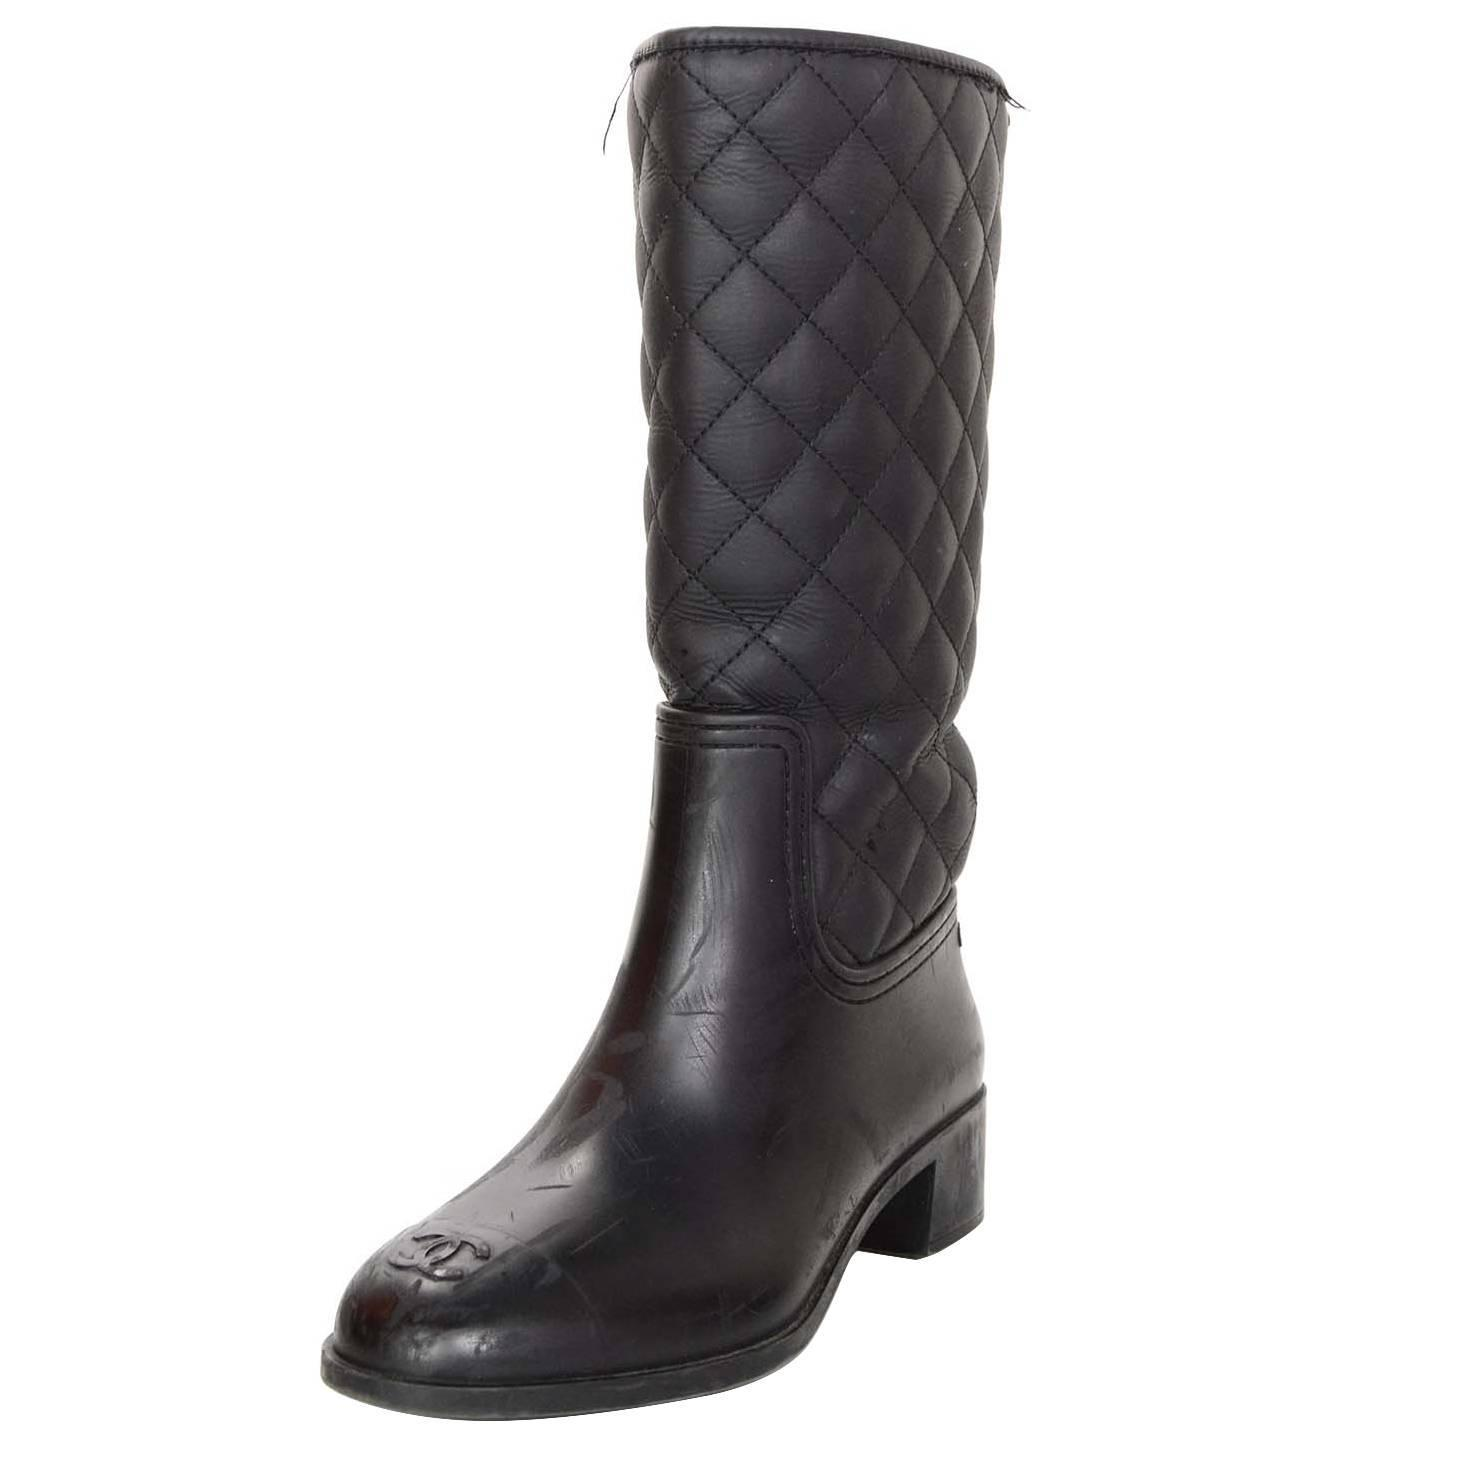 Chanel Black Quilted Rubber Rain Boots Sz 38 For Sale At 1stdibs